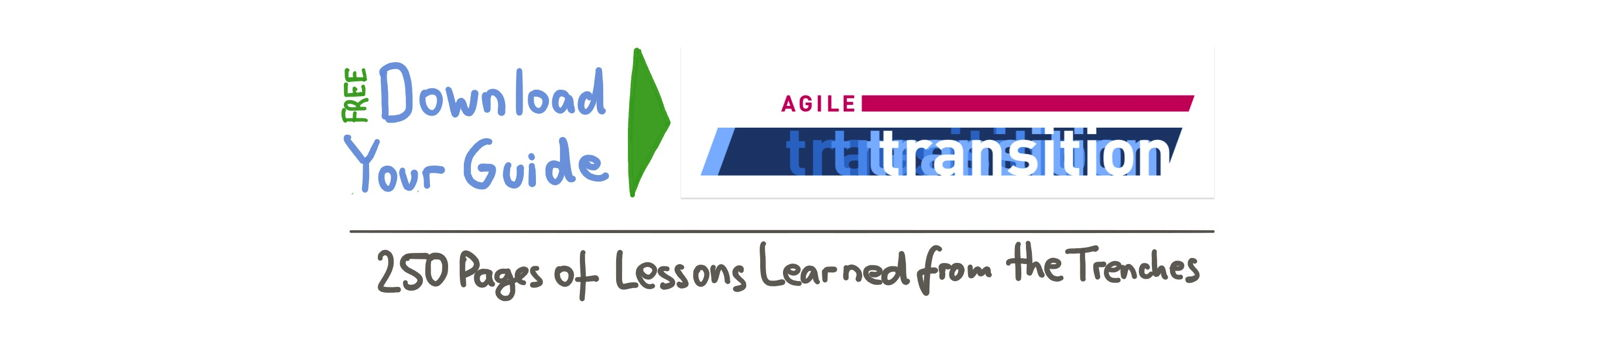 Download the free Agile Transition Ebook —Berlin Product People GmbH